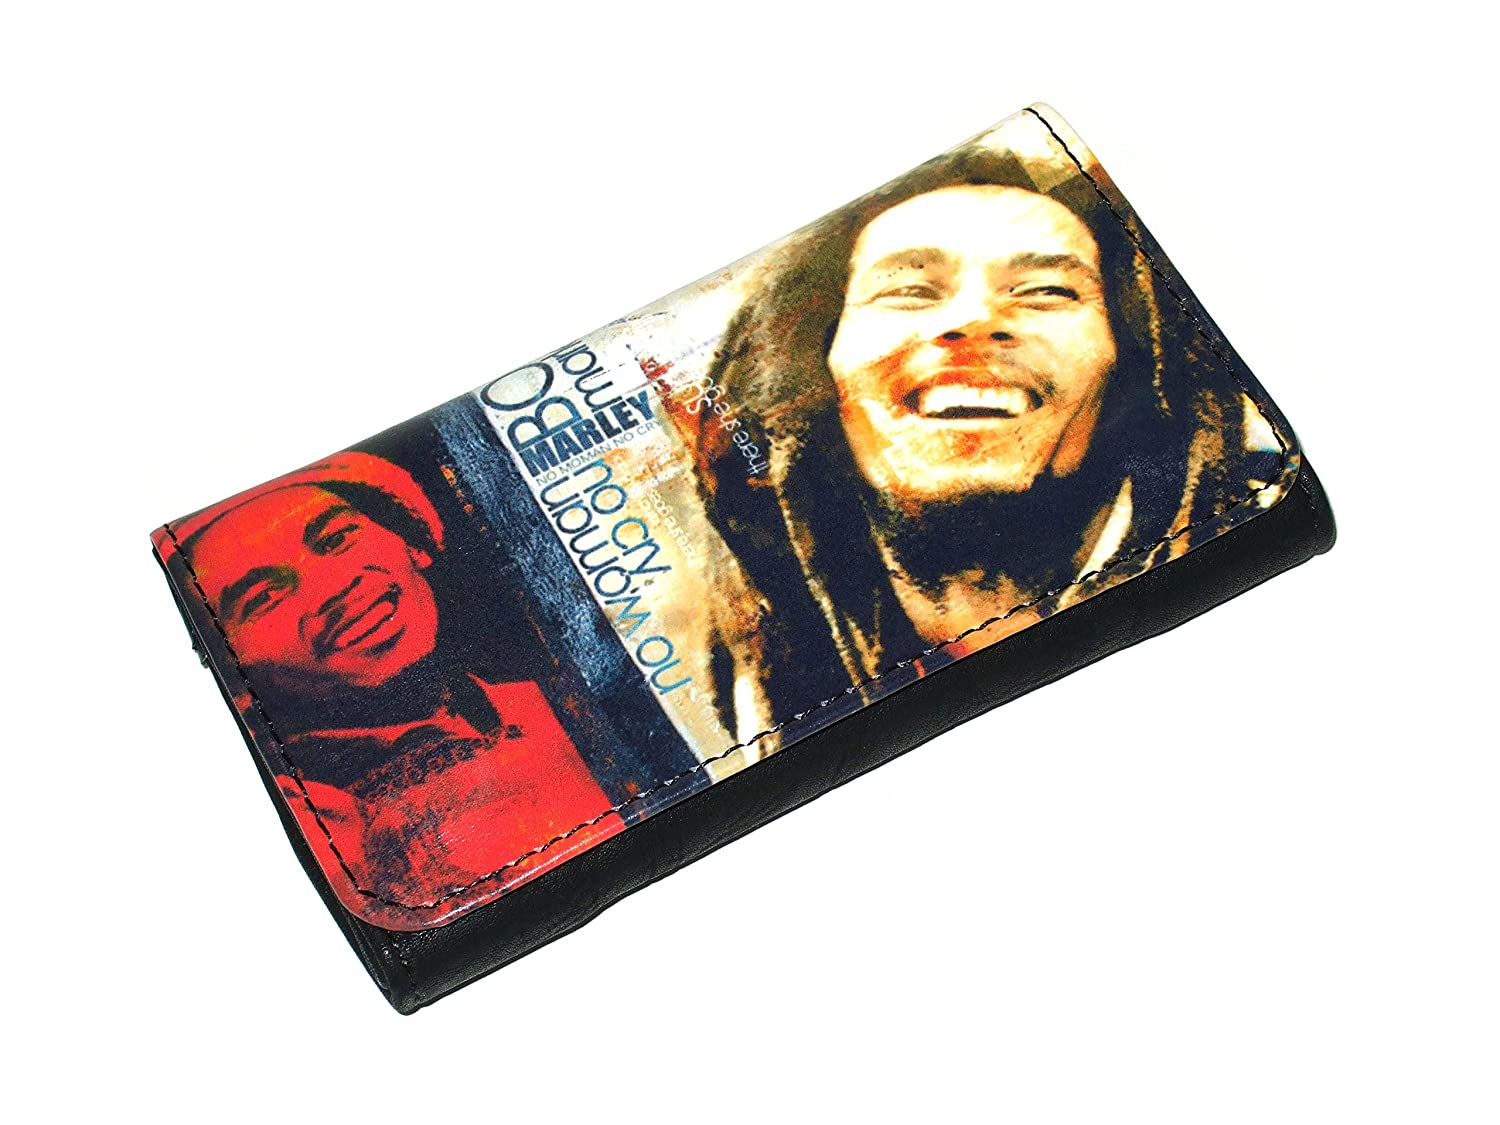 High Quality Faux Leather Tobacco Pouch - Smiling Bob Marley